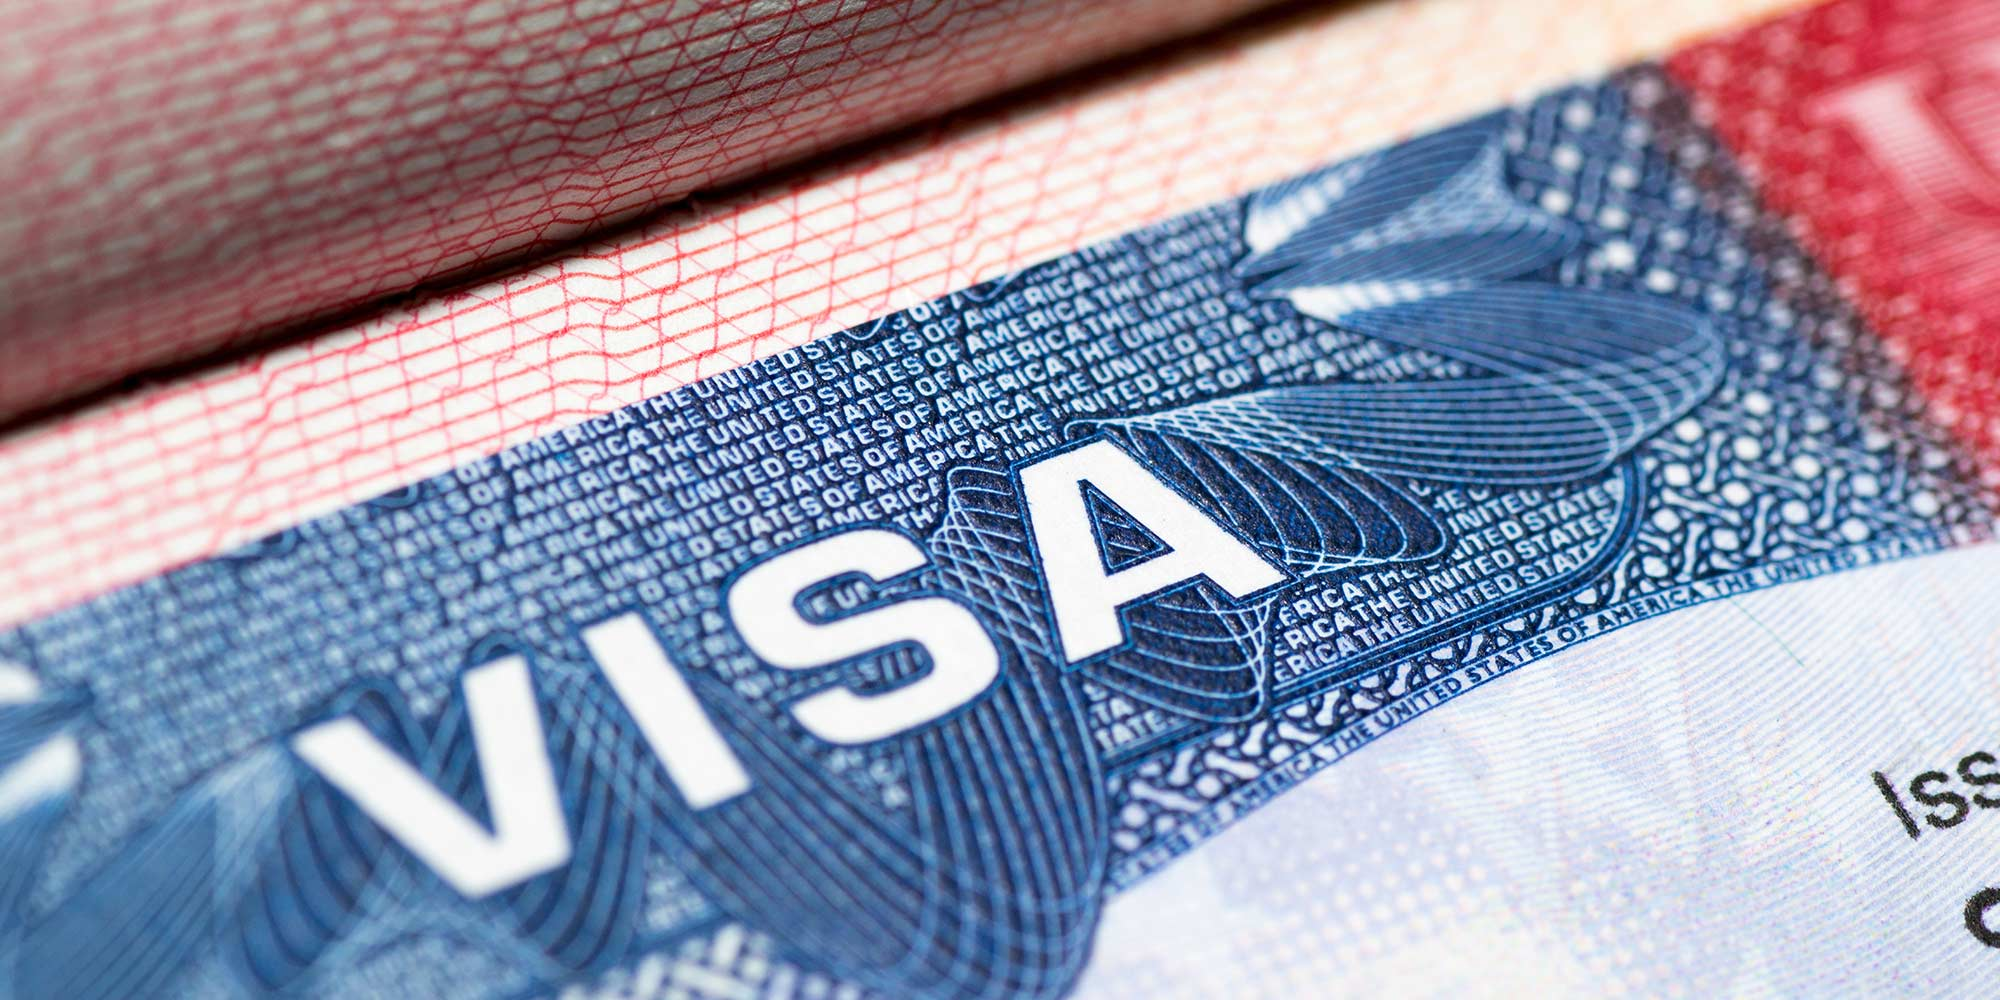 Fool proof tips to secure an immigration visa